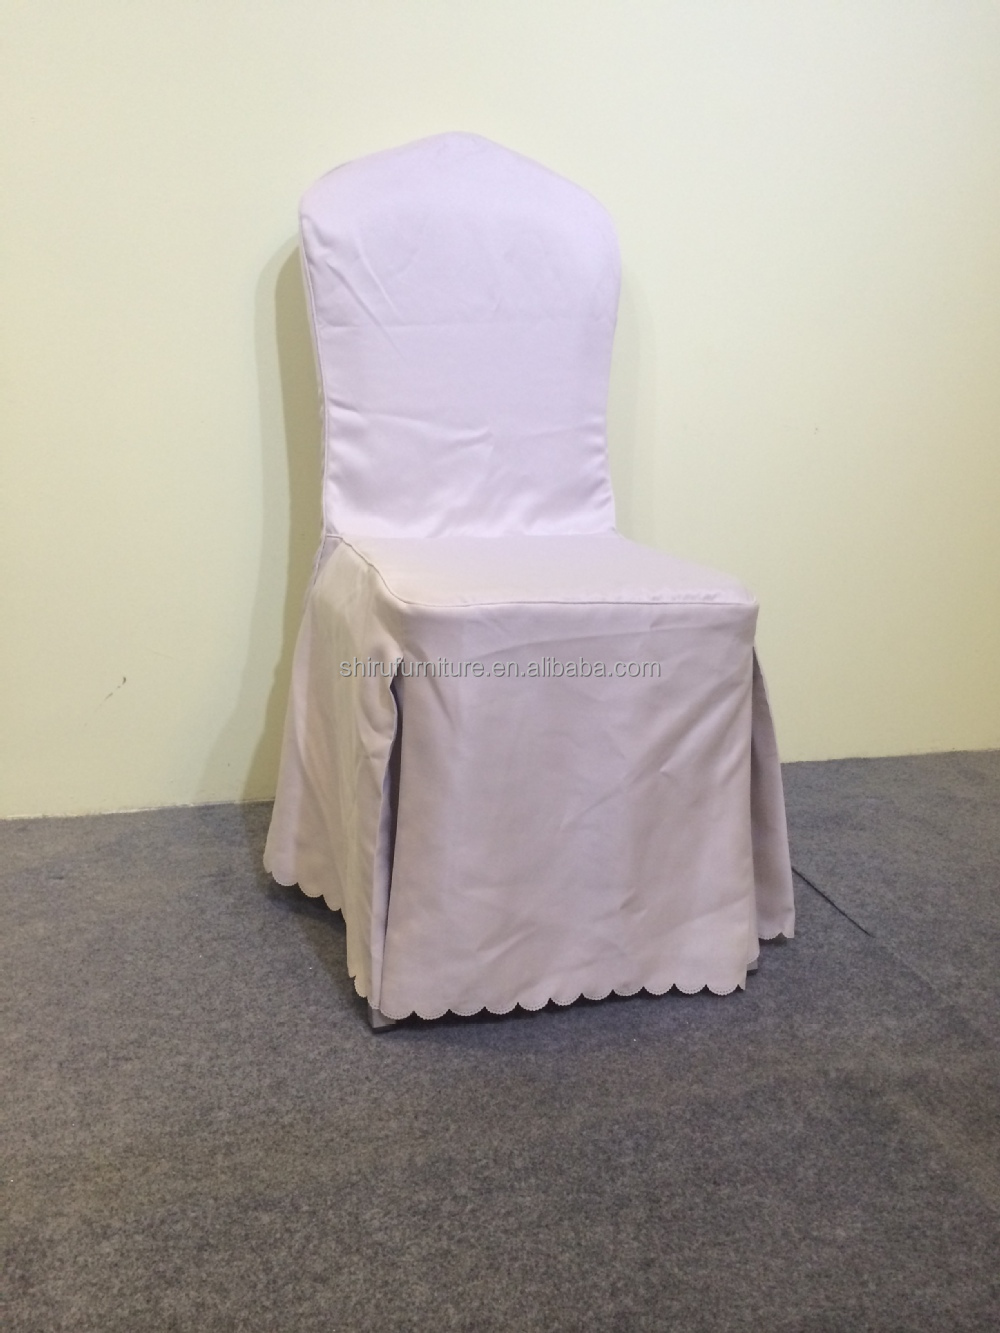 Cheap Jacquard Banquet Chair Cover For Sale Buy Cheap Chair Covers For Sale